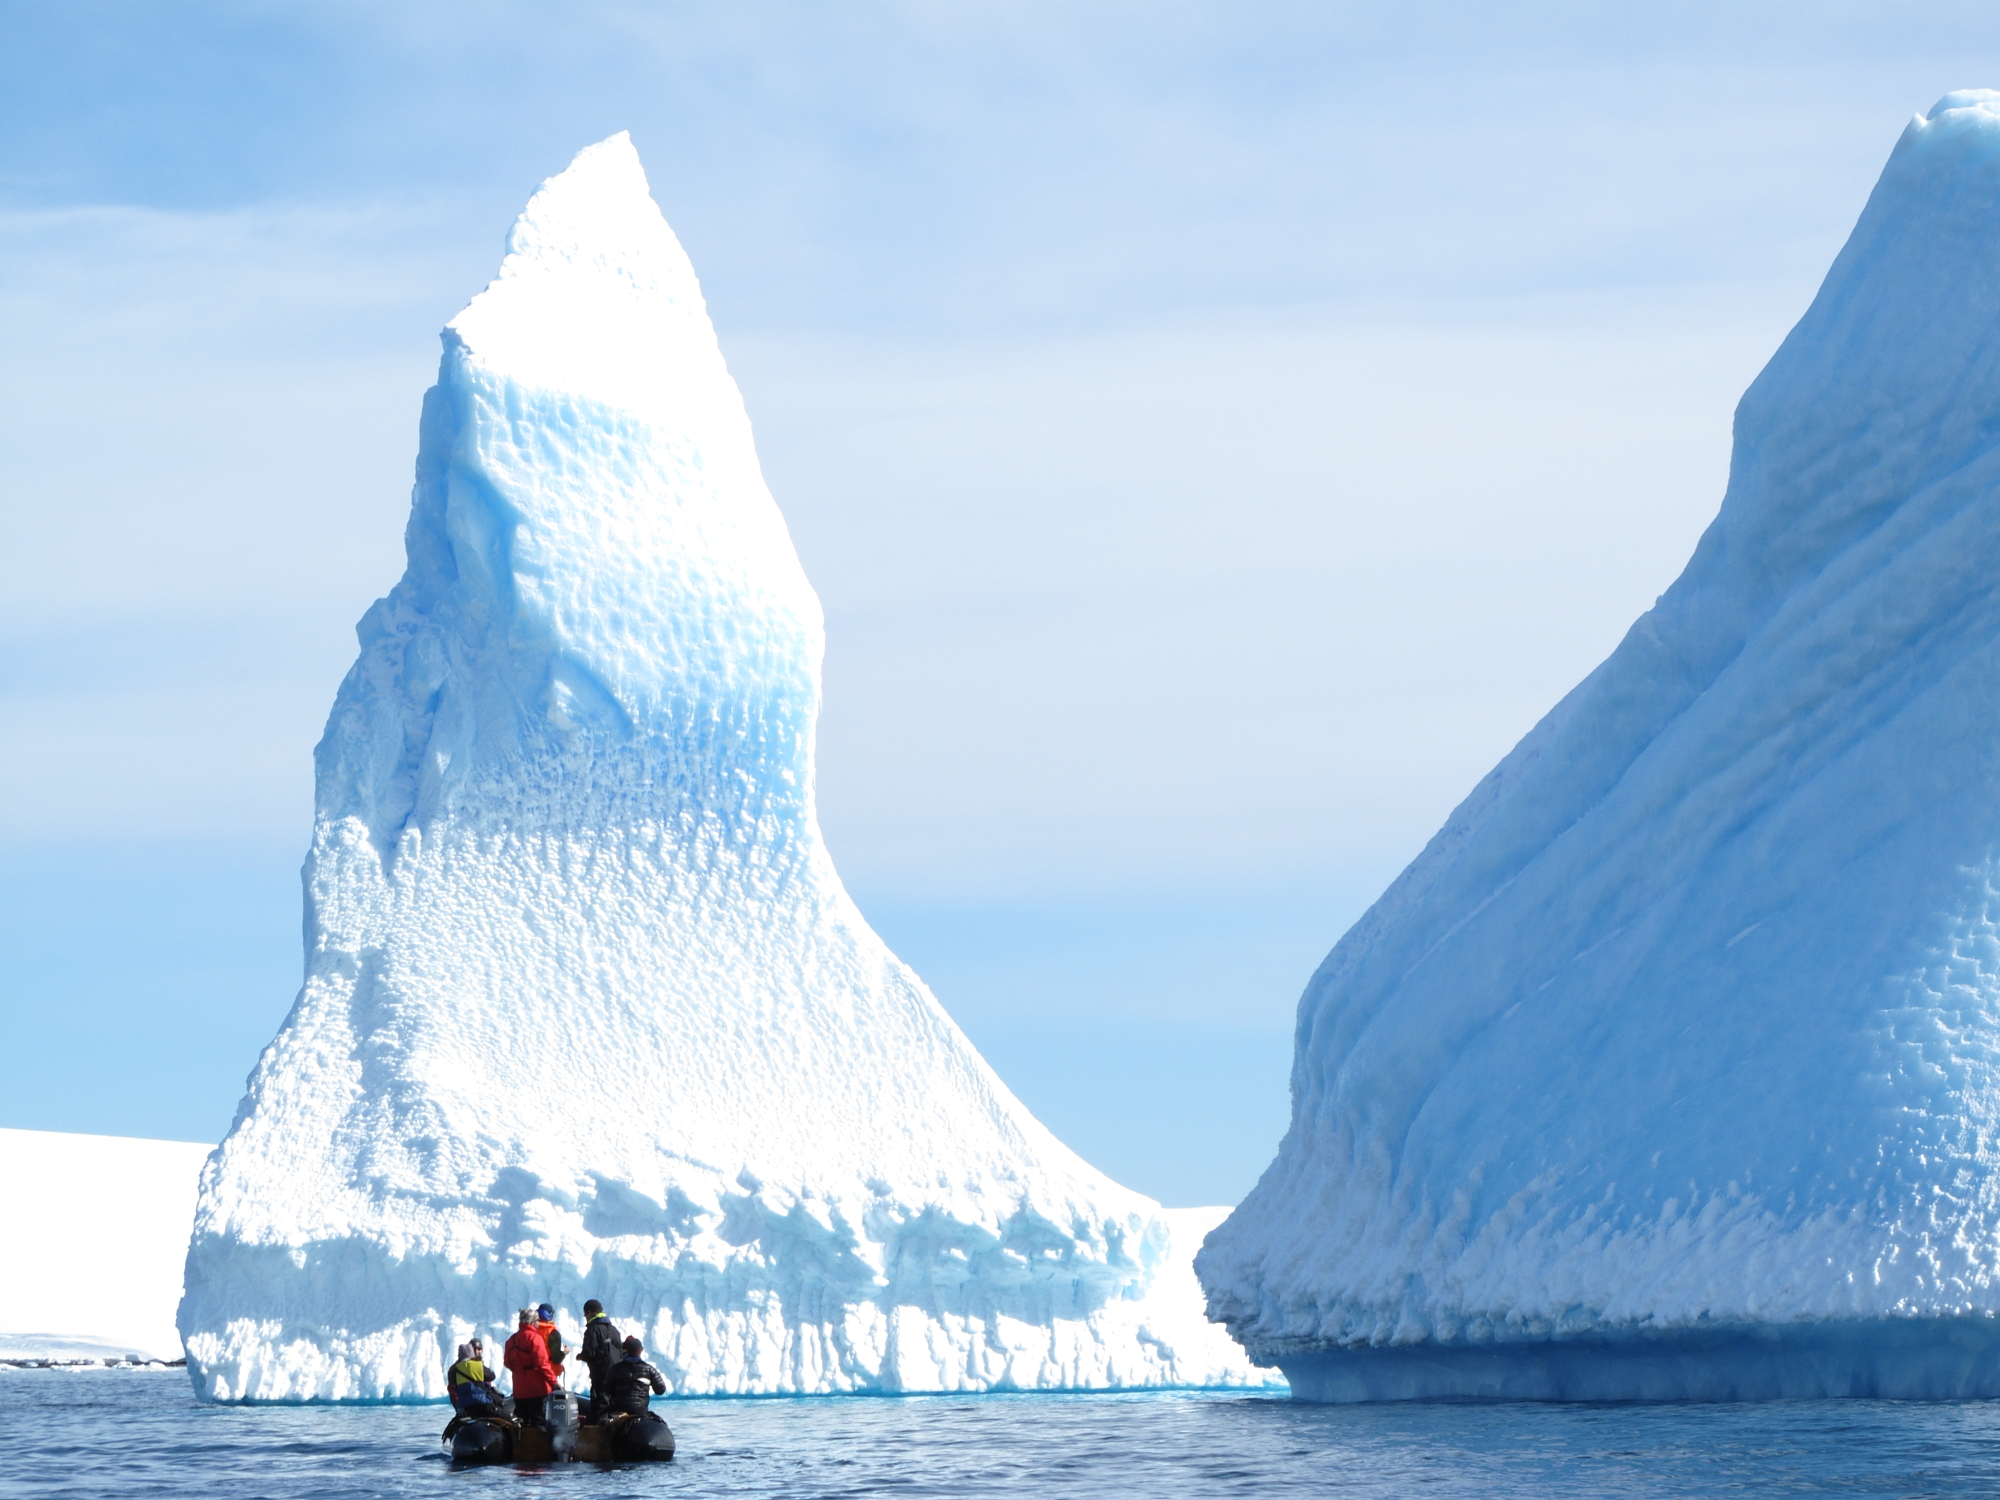 Antarctic Ice Bergs